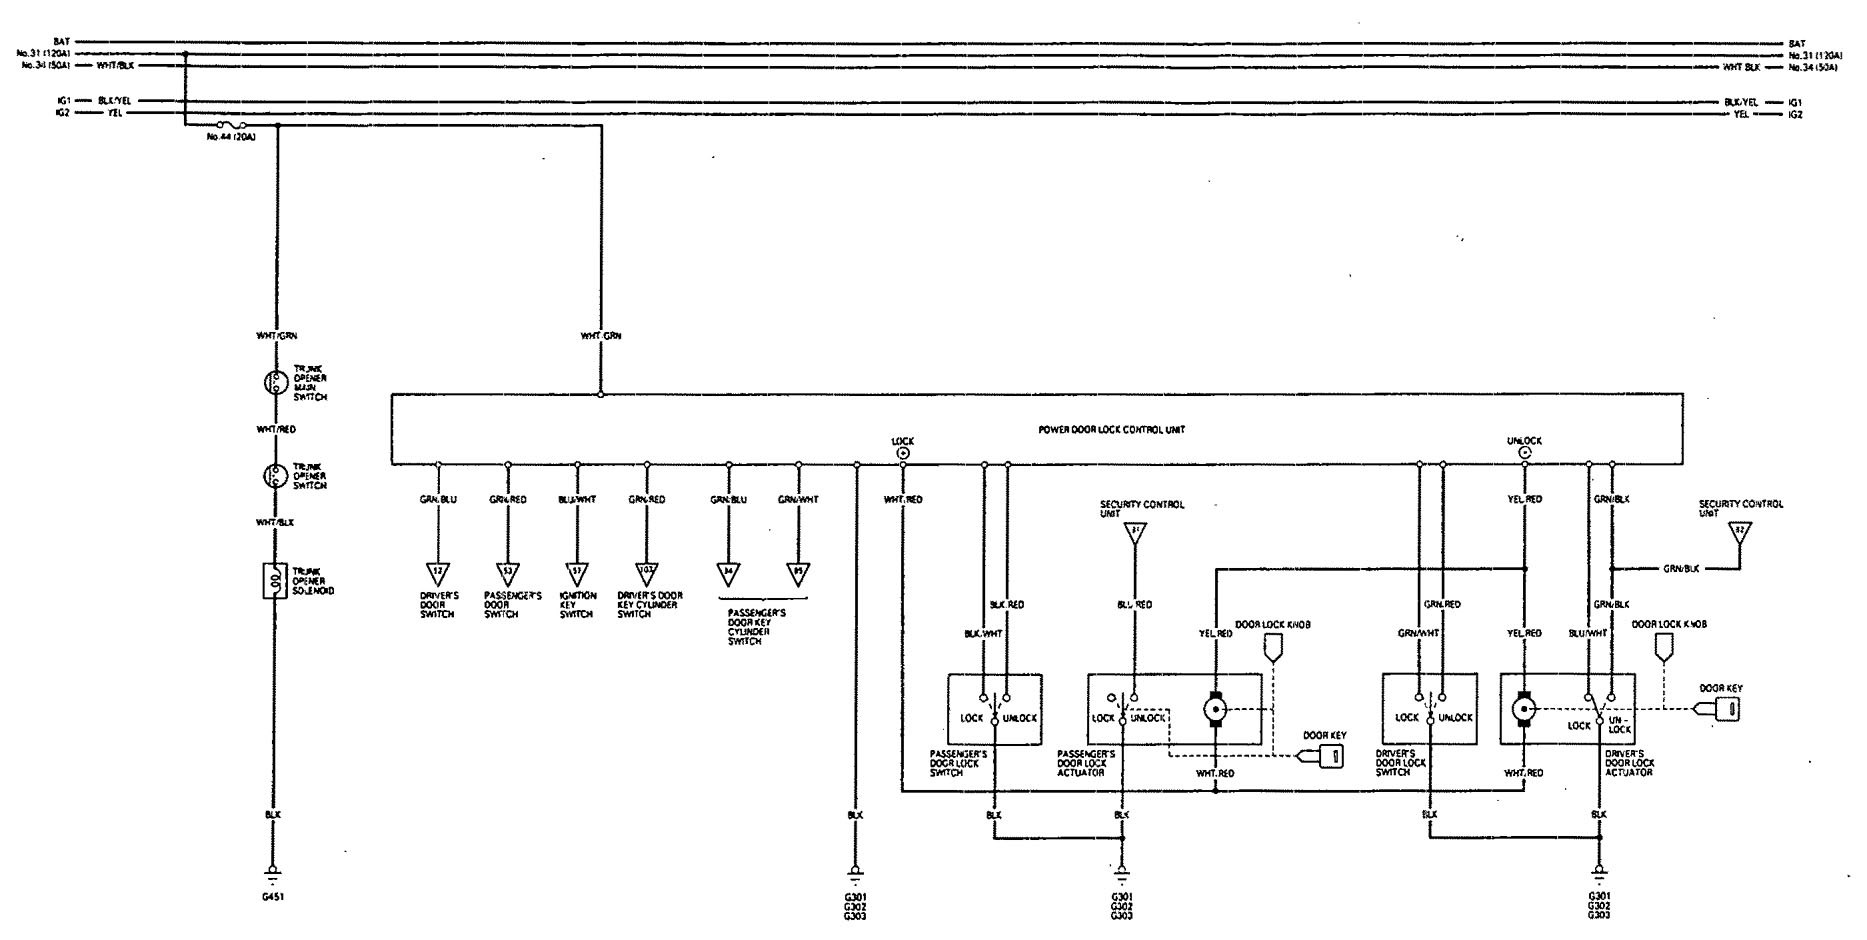 1993 Acura Legend Wiring Diagram Reveolution Of Integra Stereo Luggage Compartment Release Rh Carknowledge Info 1970 Mustang Tl